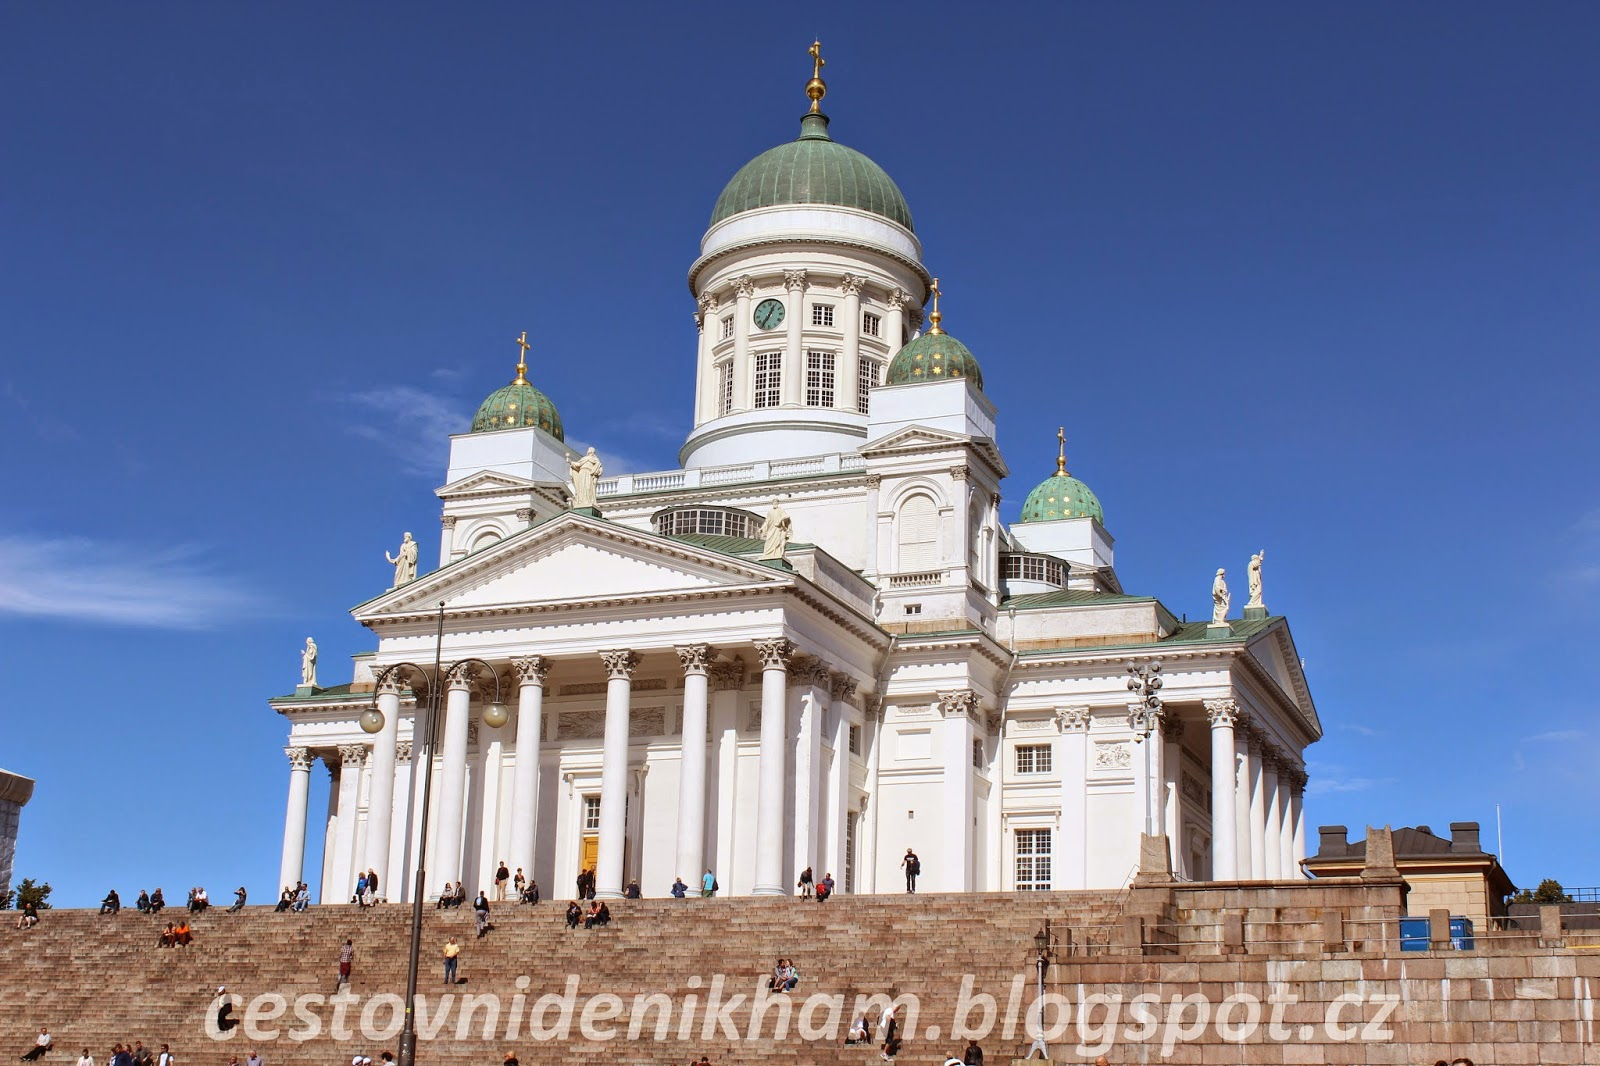 The Helsinki Cathedral and the Senate Square